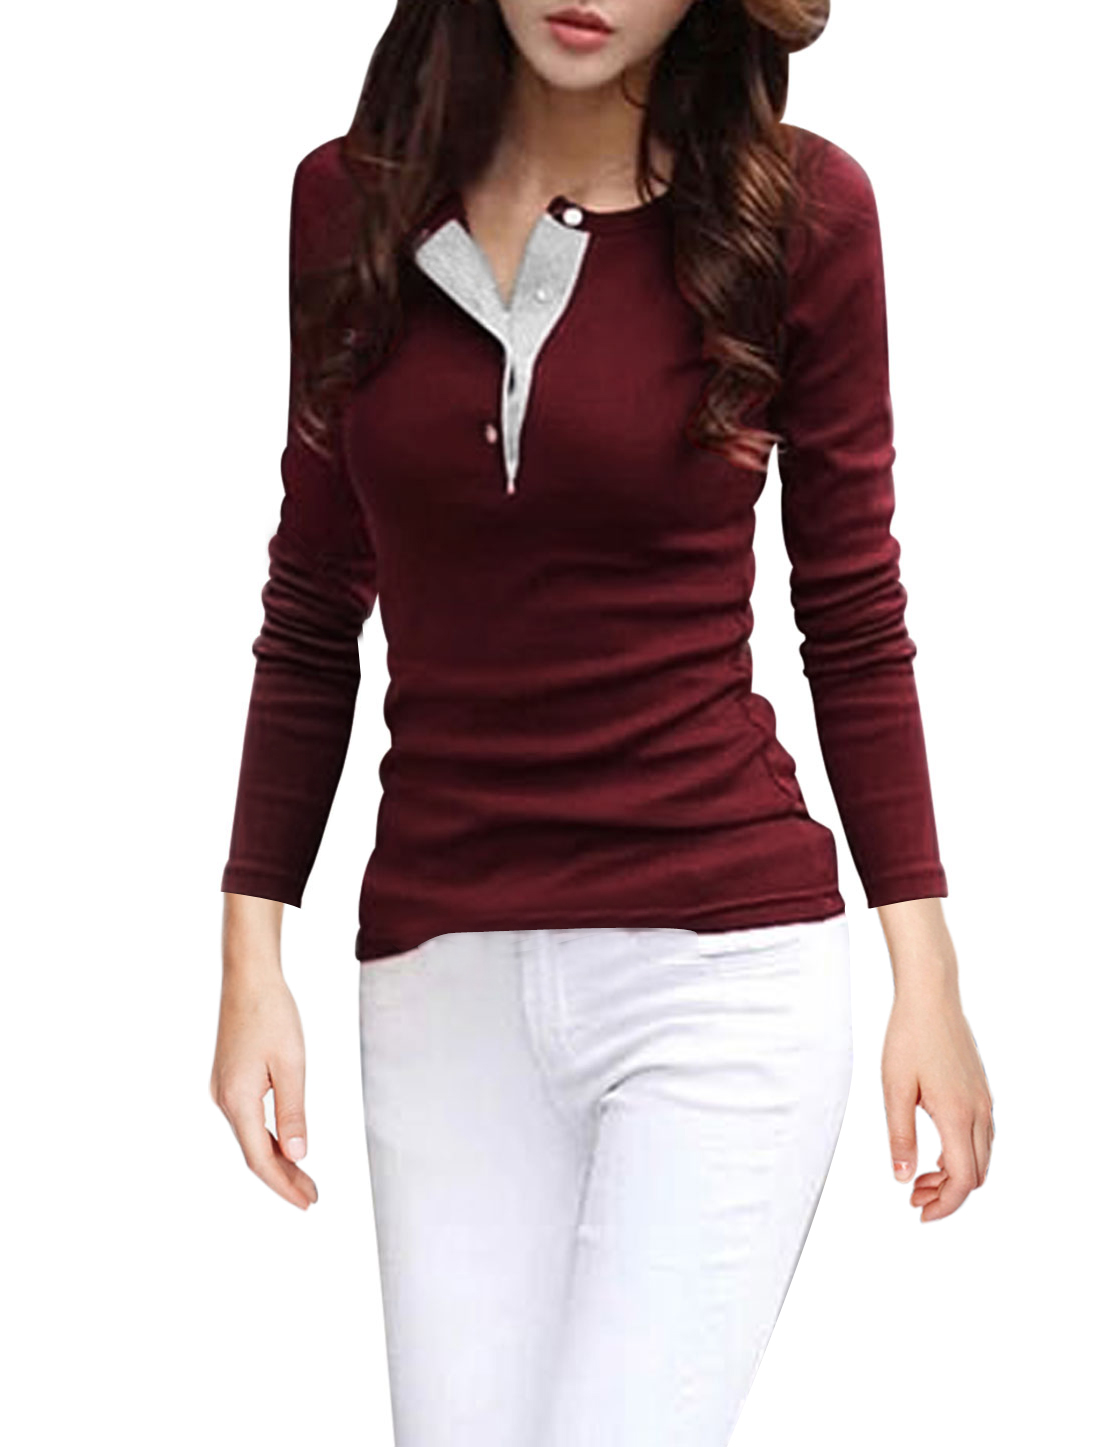 Ladies Long Sleeves Pullover Round Neck Leisure Burgundy Shirts M